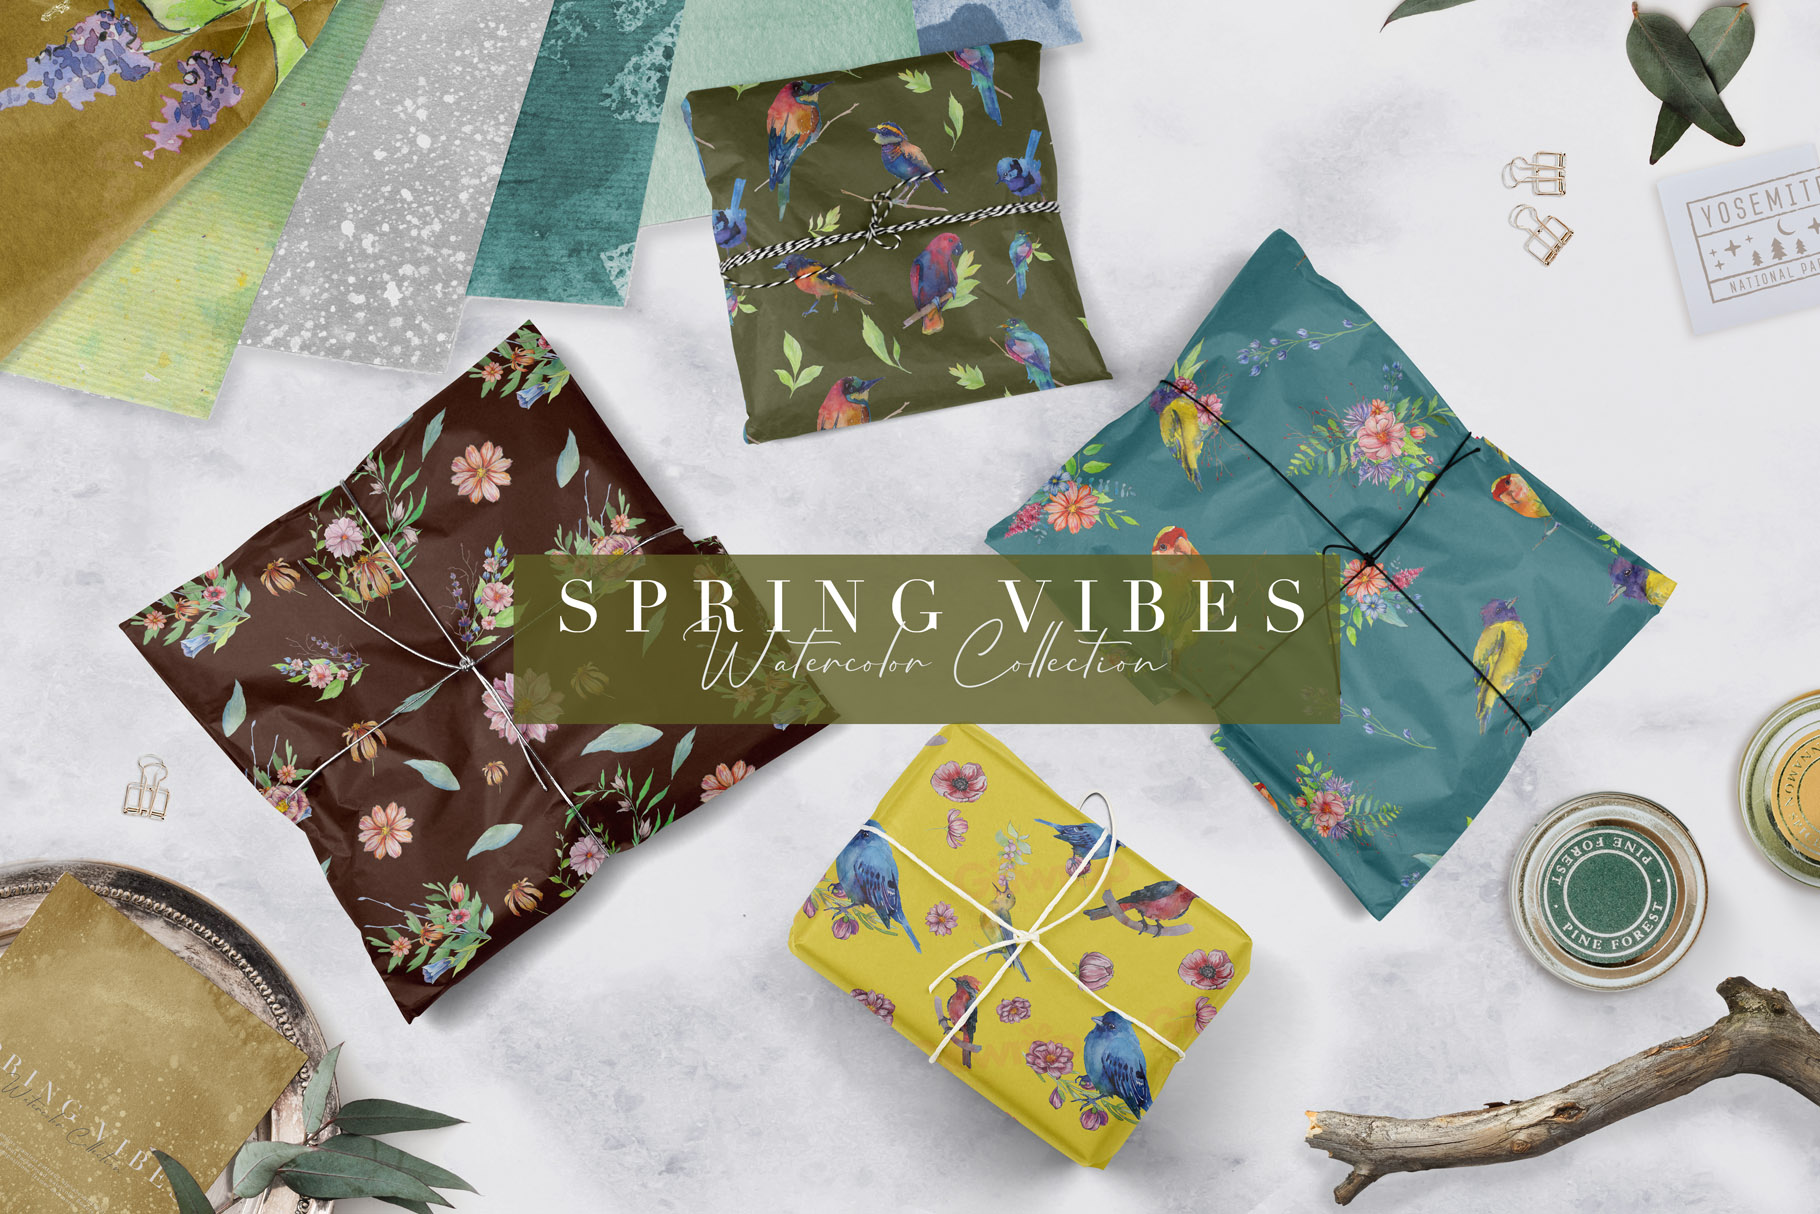 Spring Vibes: Hand-drawn Floral Elements - $17 - Prev14